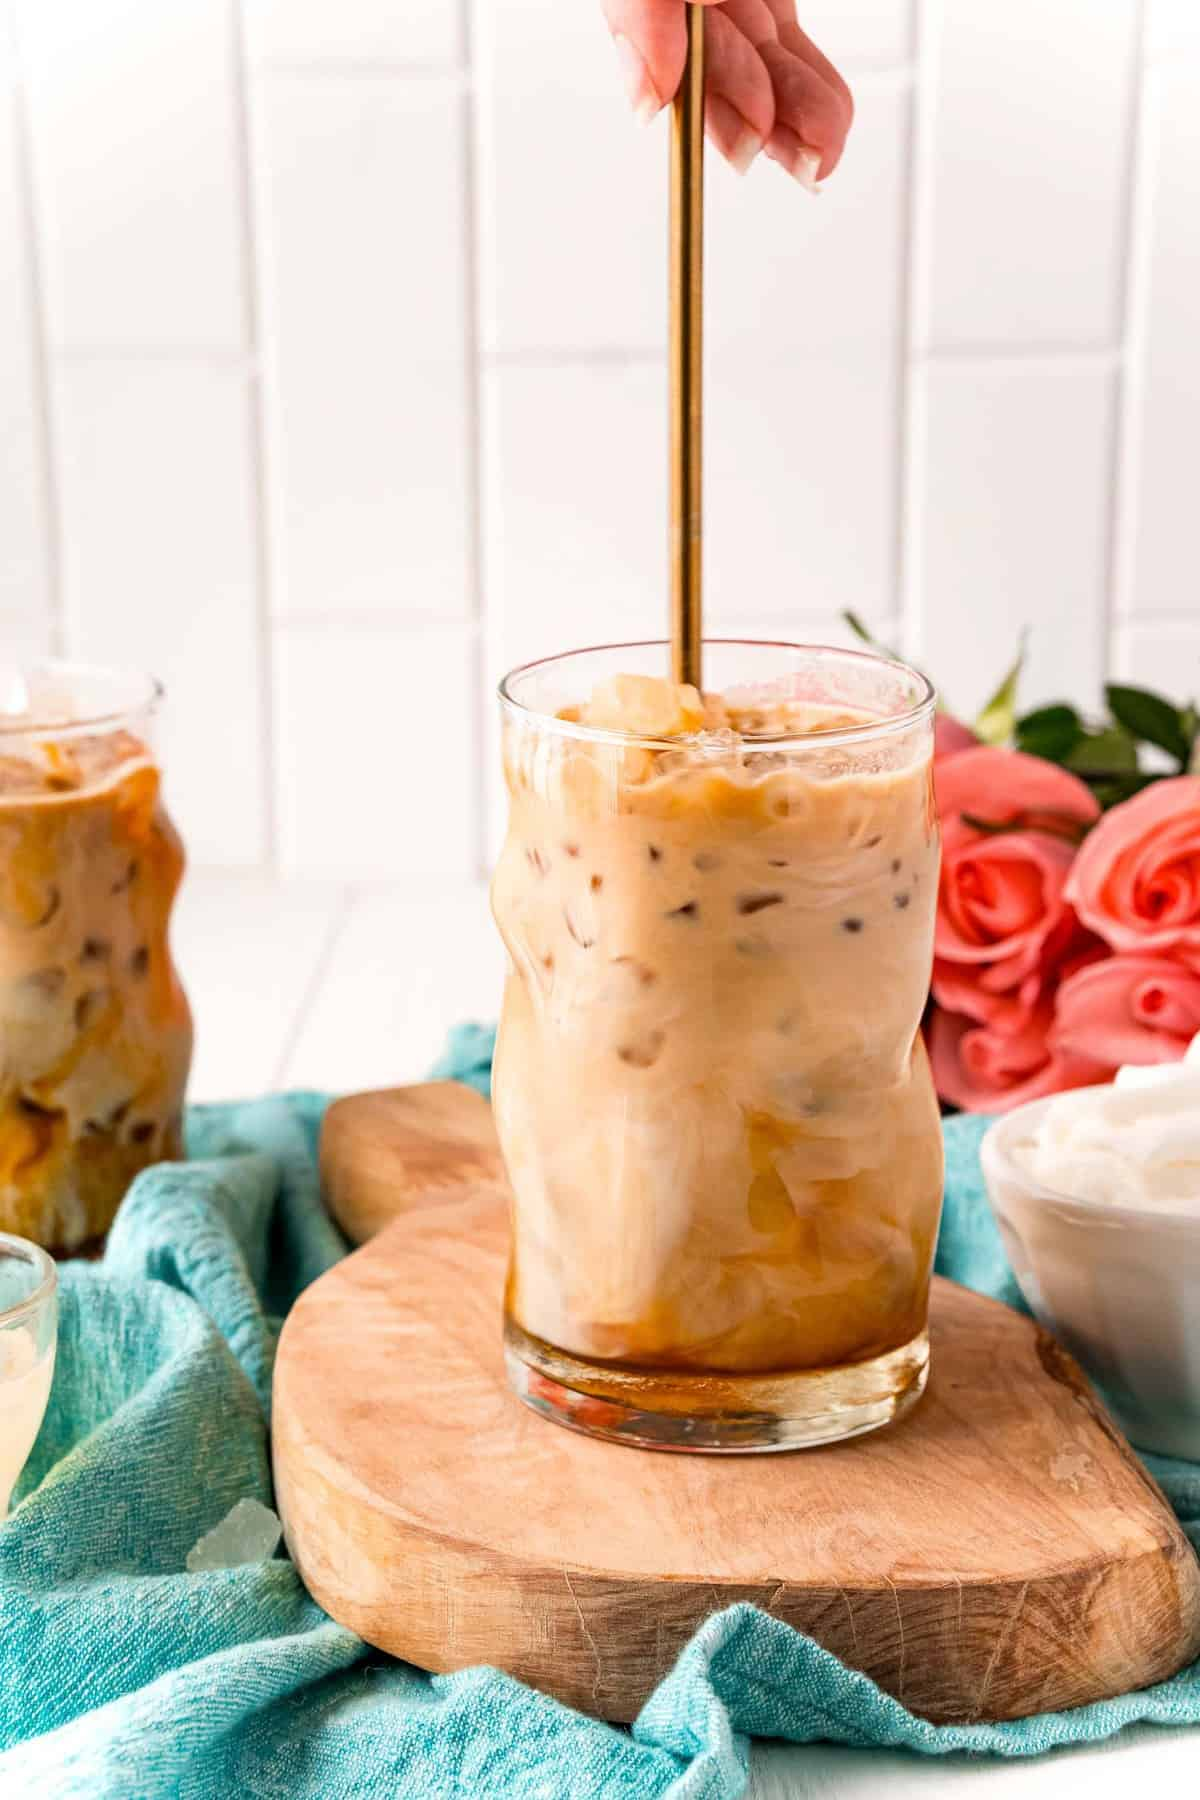 Iced latte being stirred with a spoon.